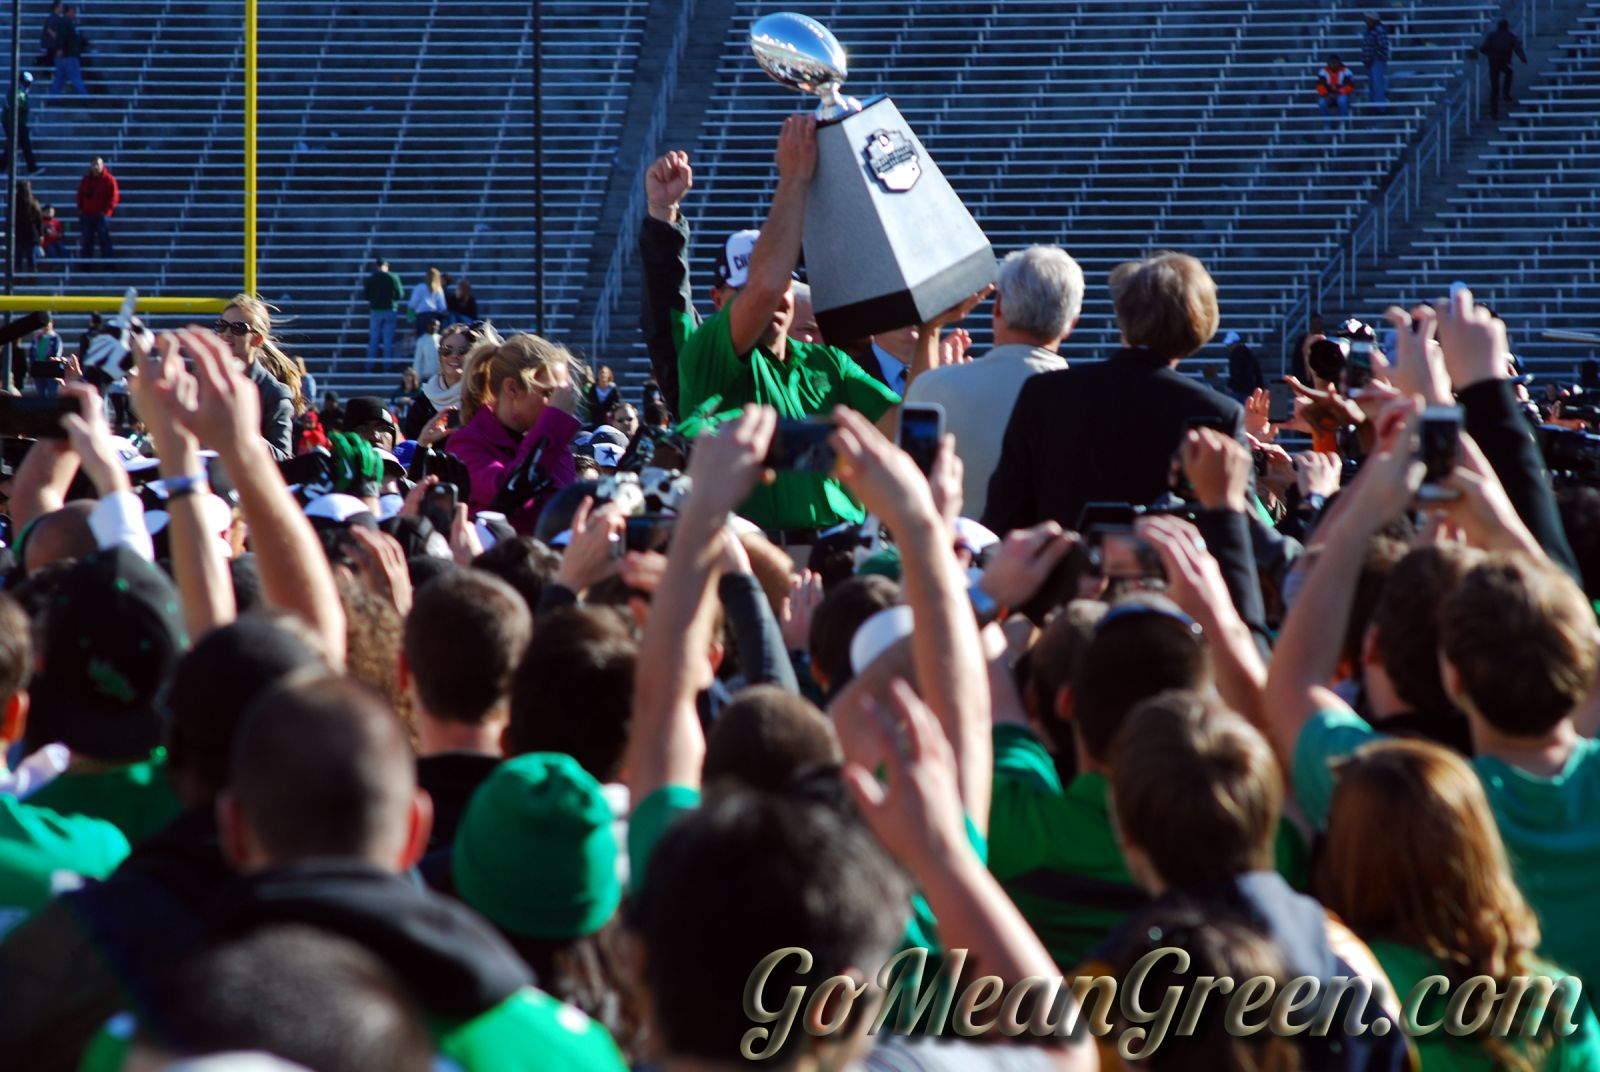 Mac raises trophy To The students